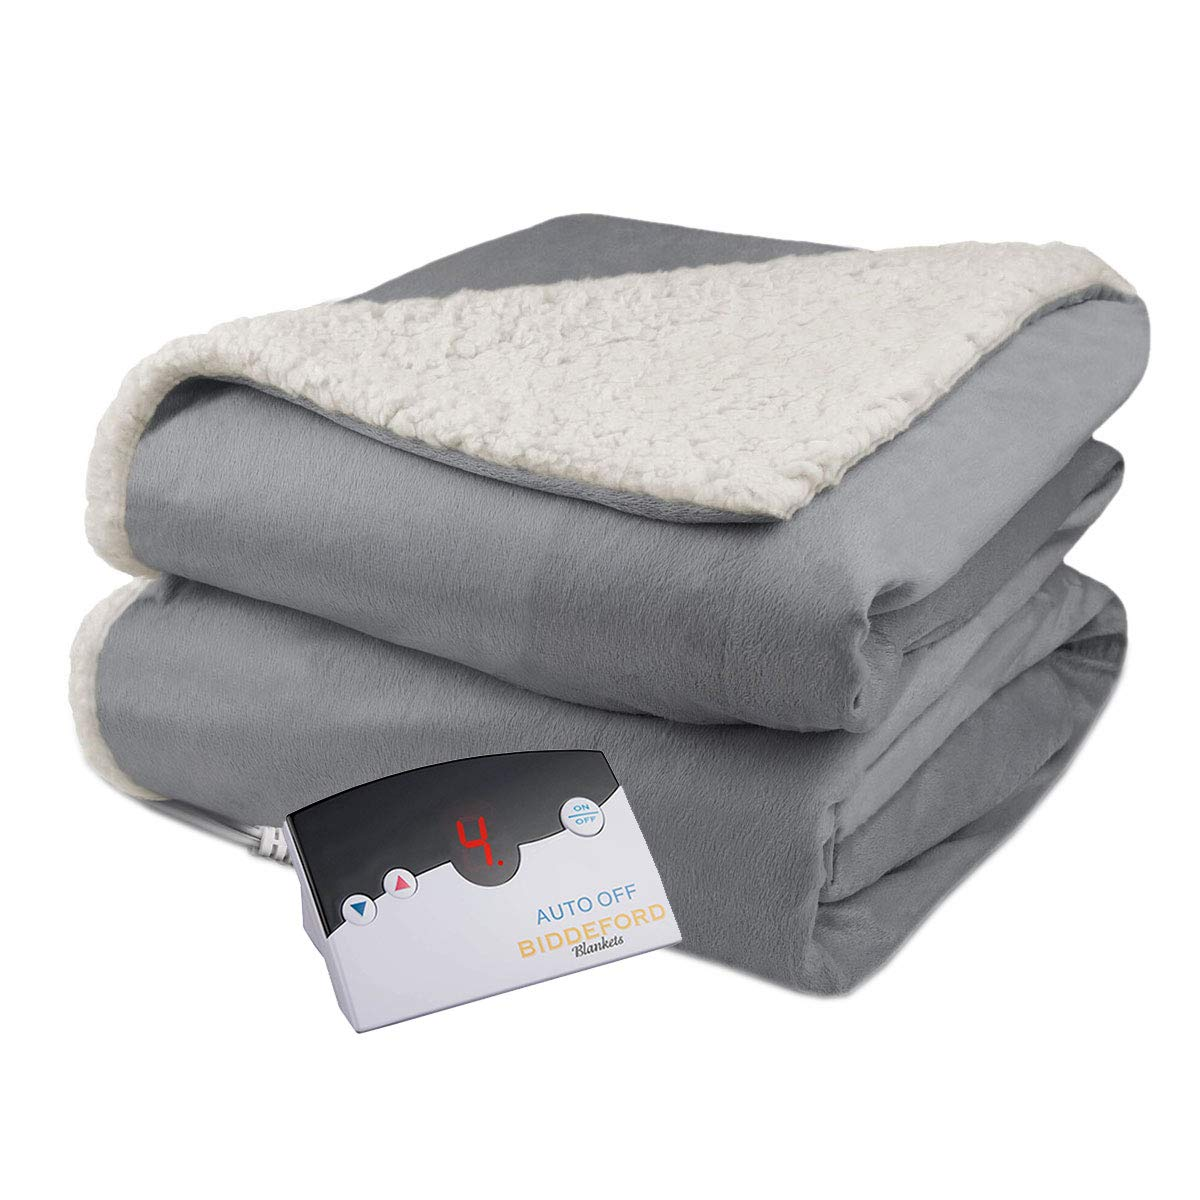 Biddeford Velour Sherpa Electric Heated Warming Blanket Twin Gray Washable Auto Shut Off 10 Heat Settings Buy Online In Bahrain Missing Category Value Products In Bahrain See Prices Reviews